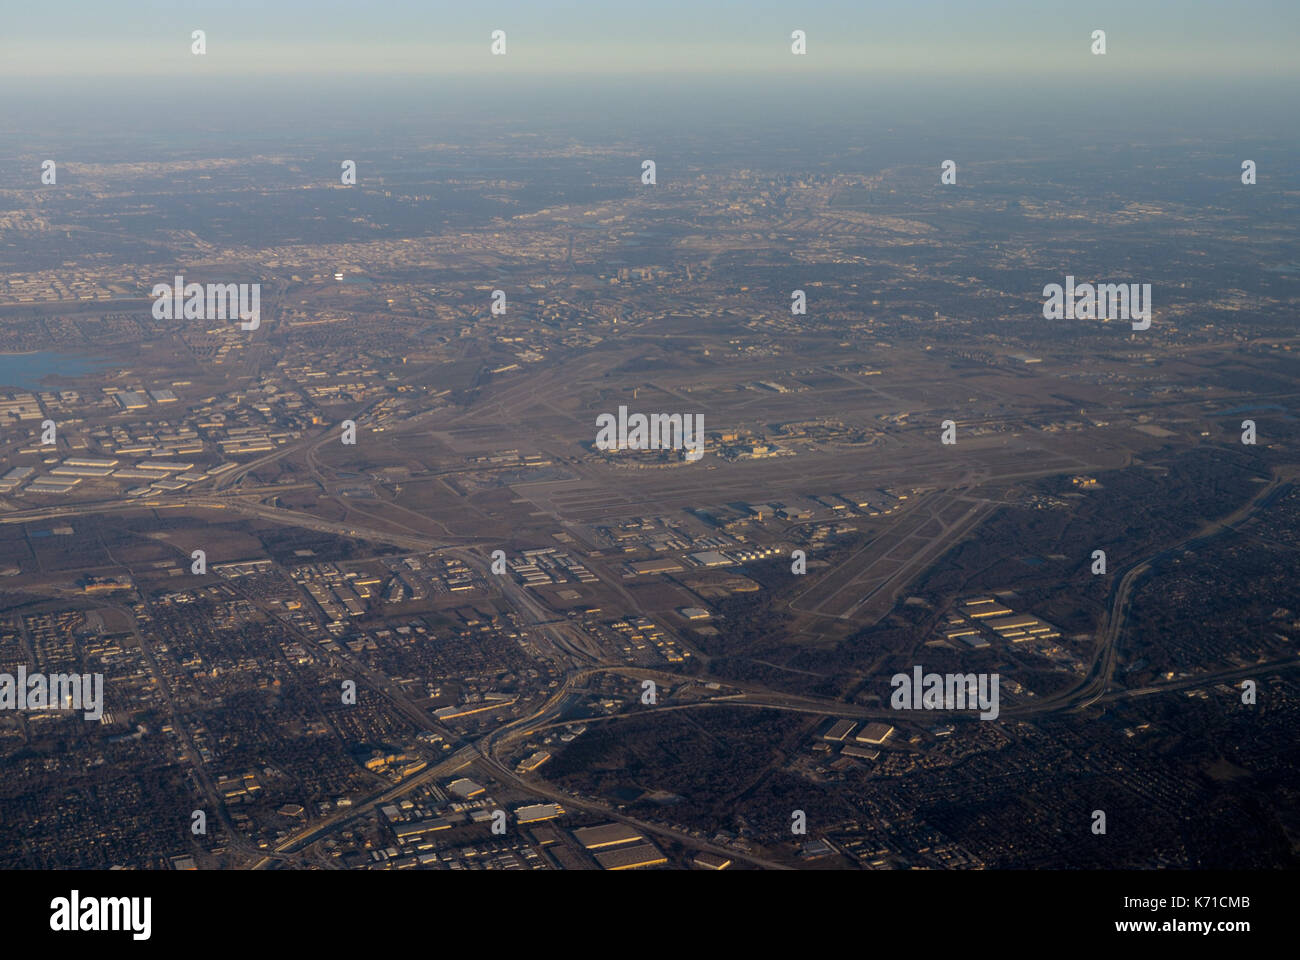 Dallas Fort Worth (DFW) airport (Aerial) - Stock Image